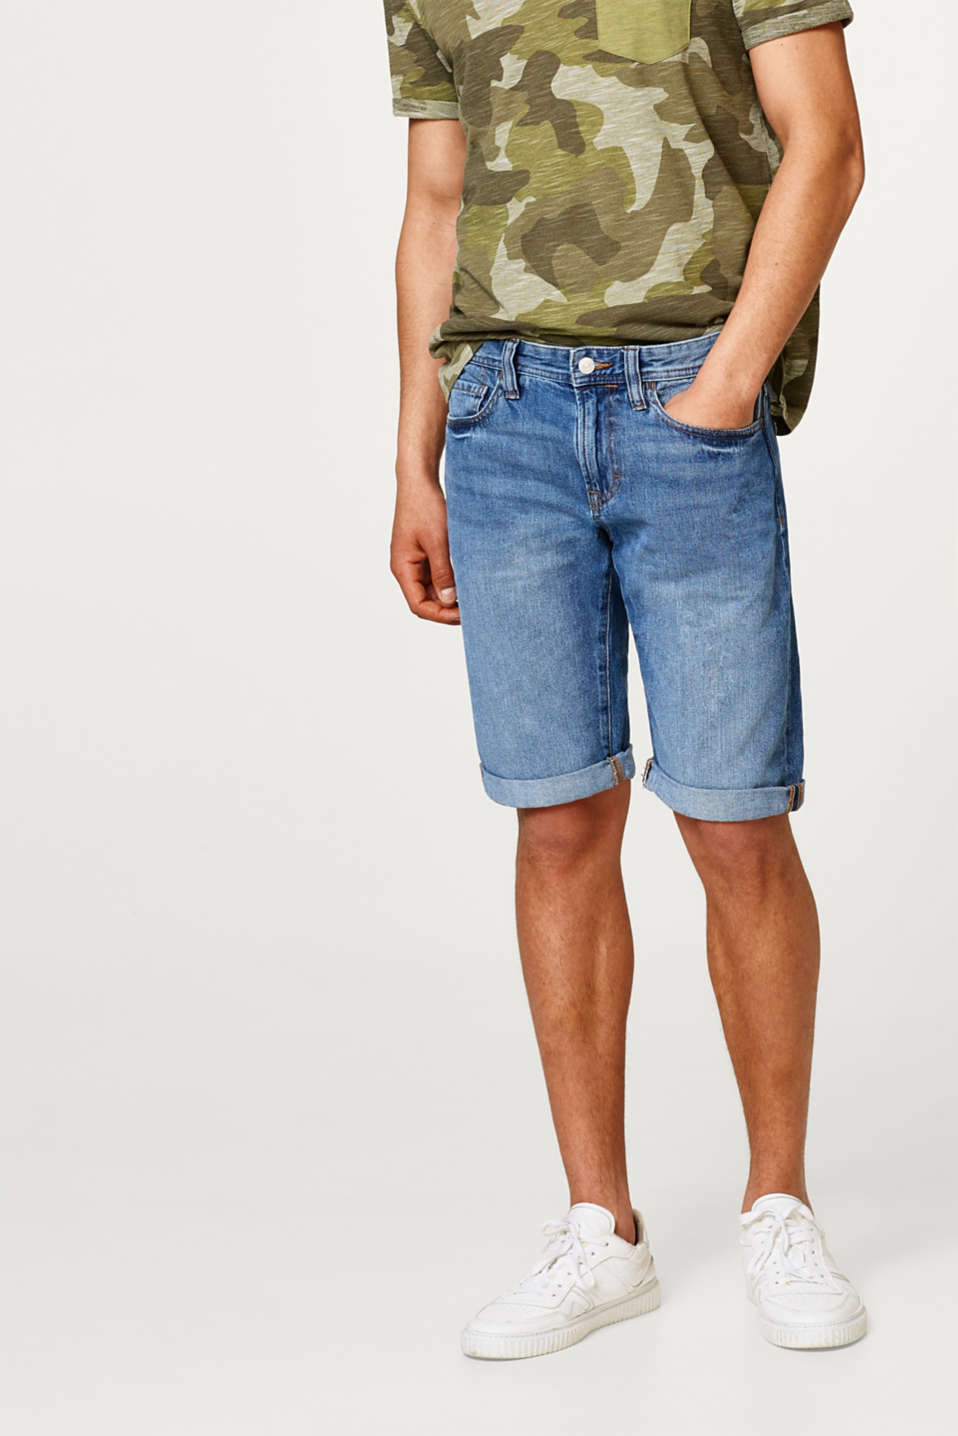 edc - Denim shorts with a subtle garment-washed effect, in cotton